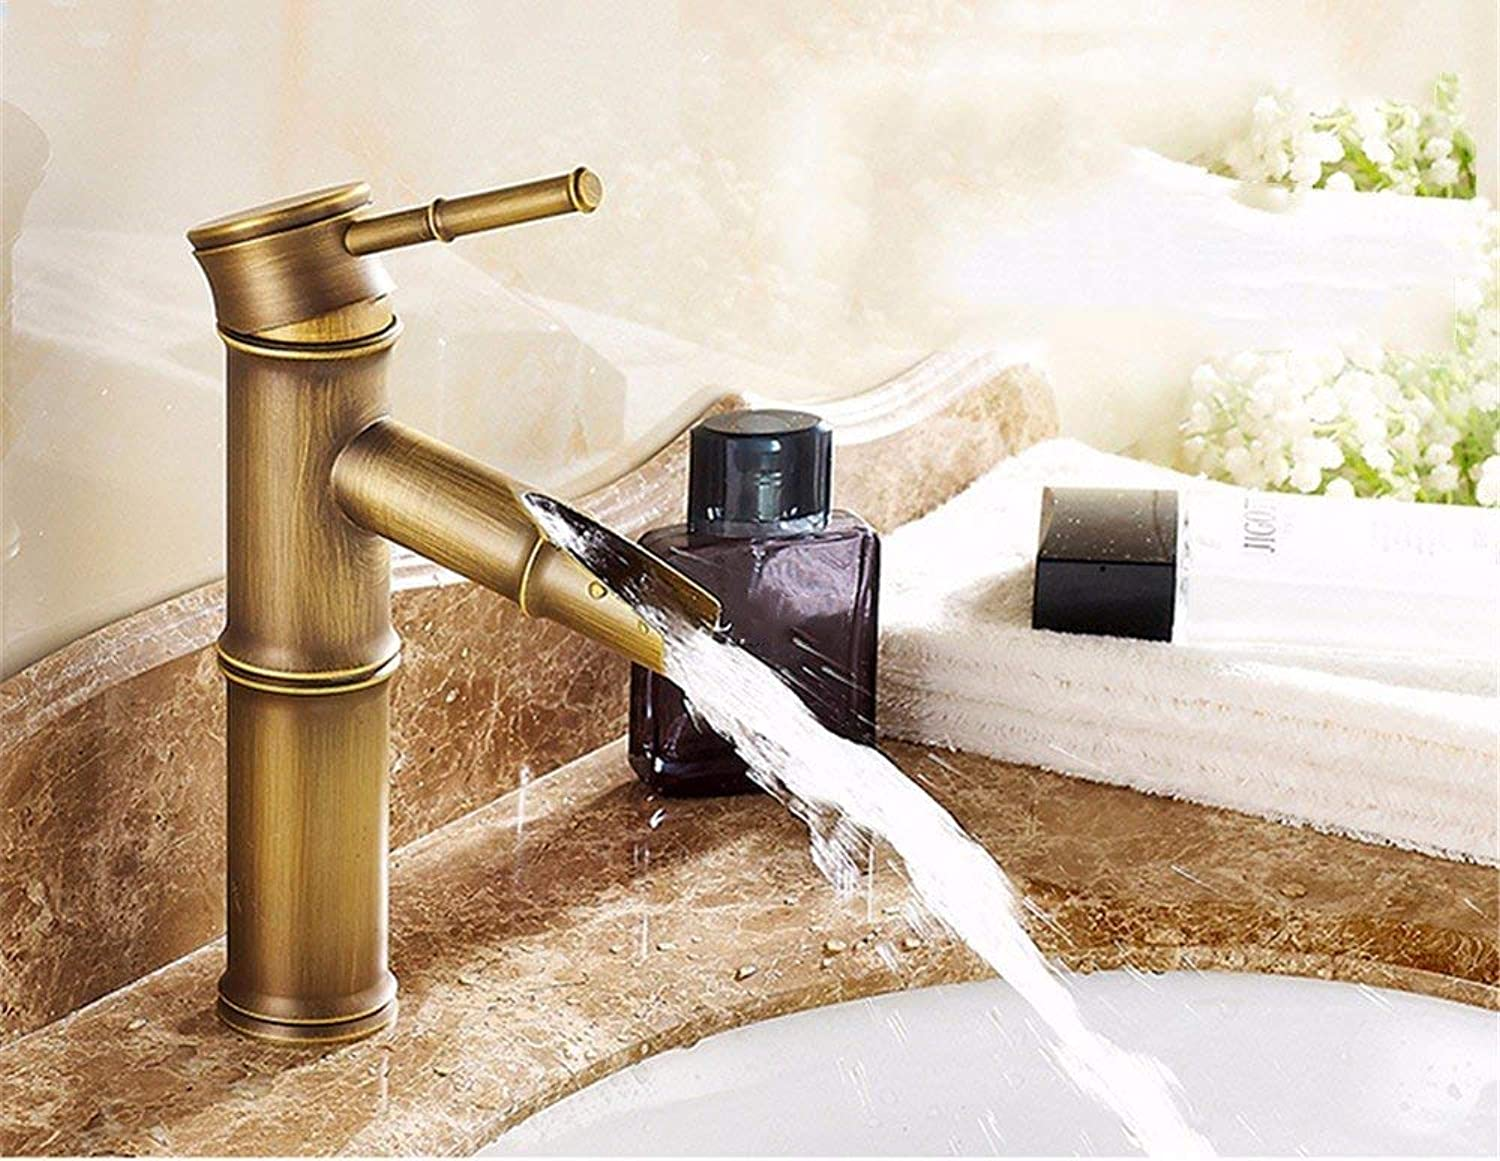 Oudan Basin Mixer Tap Bathroom Sink Faucet The inter-continental basin full copper antique and cold water tap washbasin bench pots antique bamboo water faucet